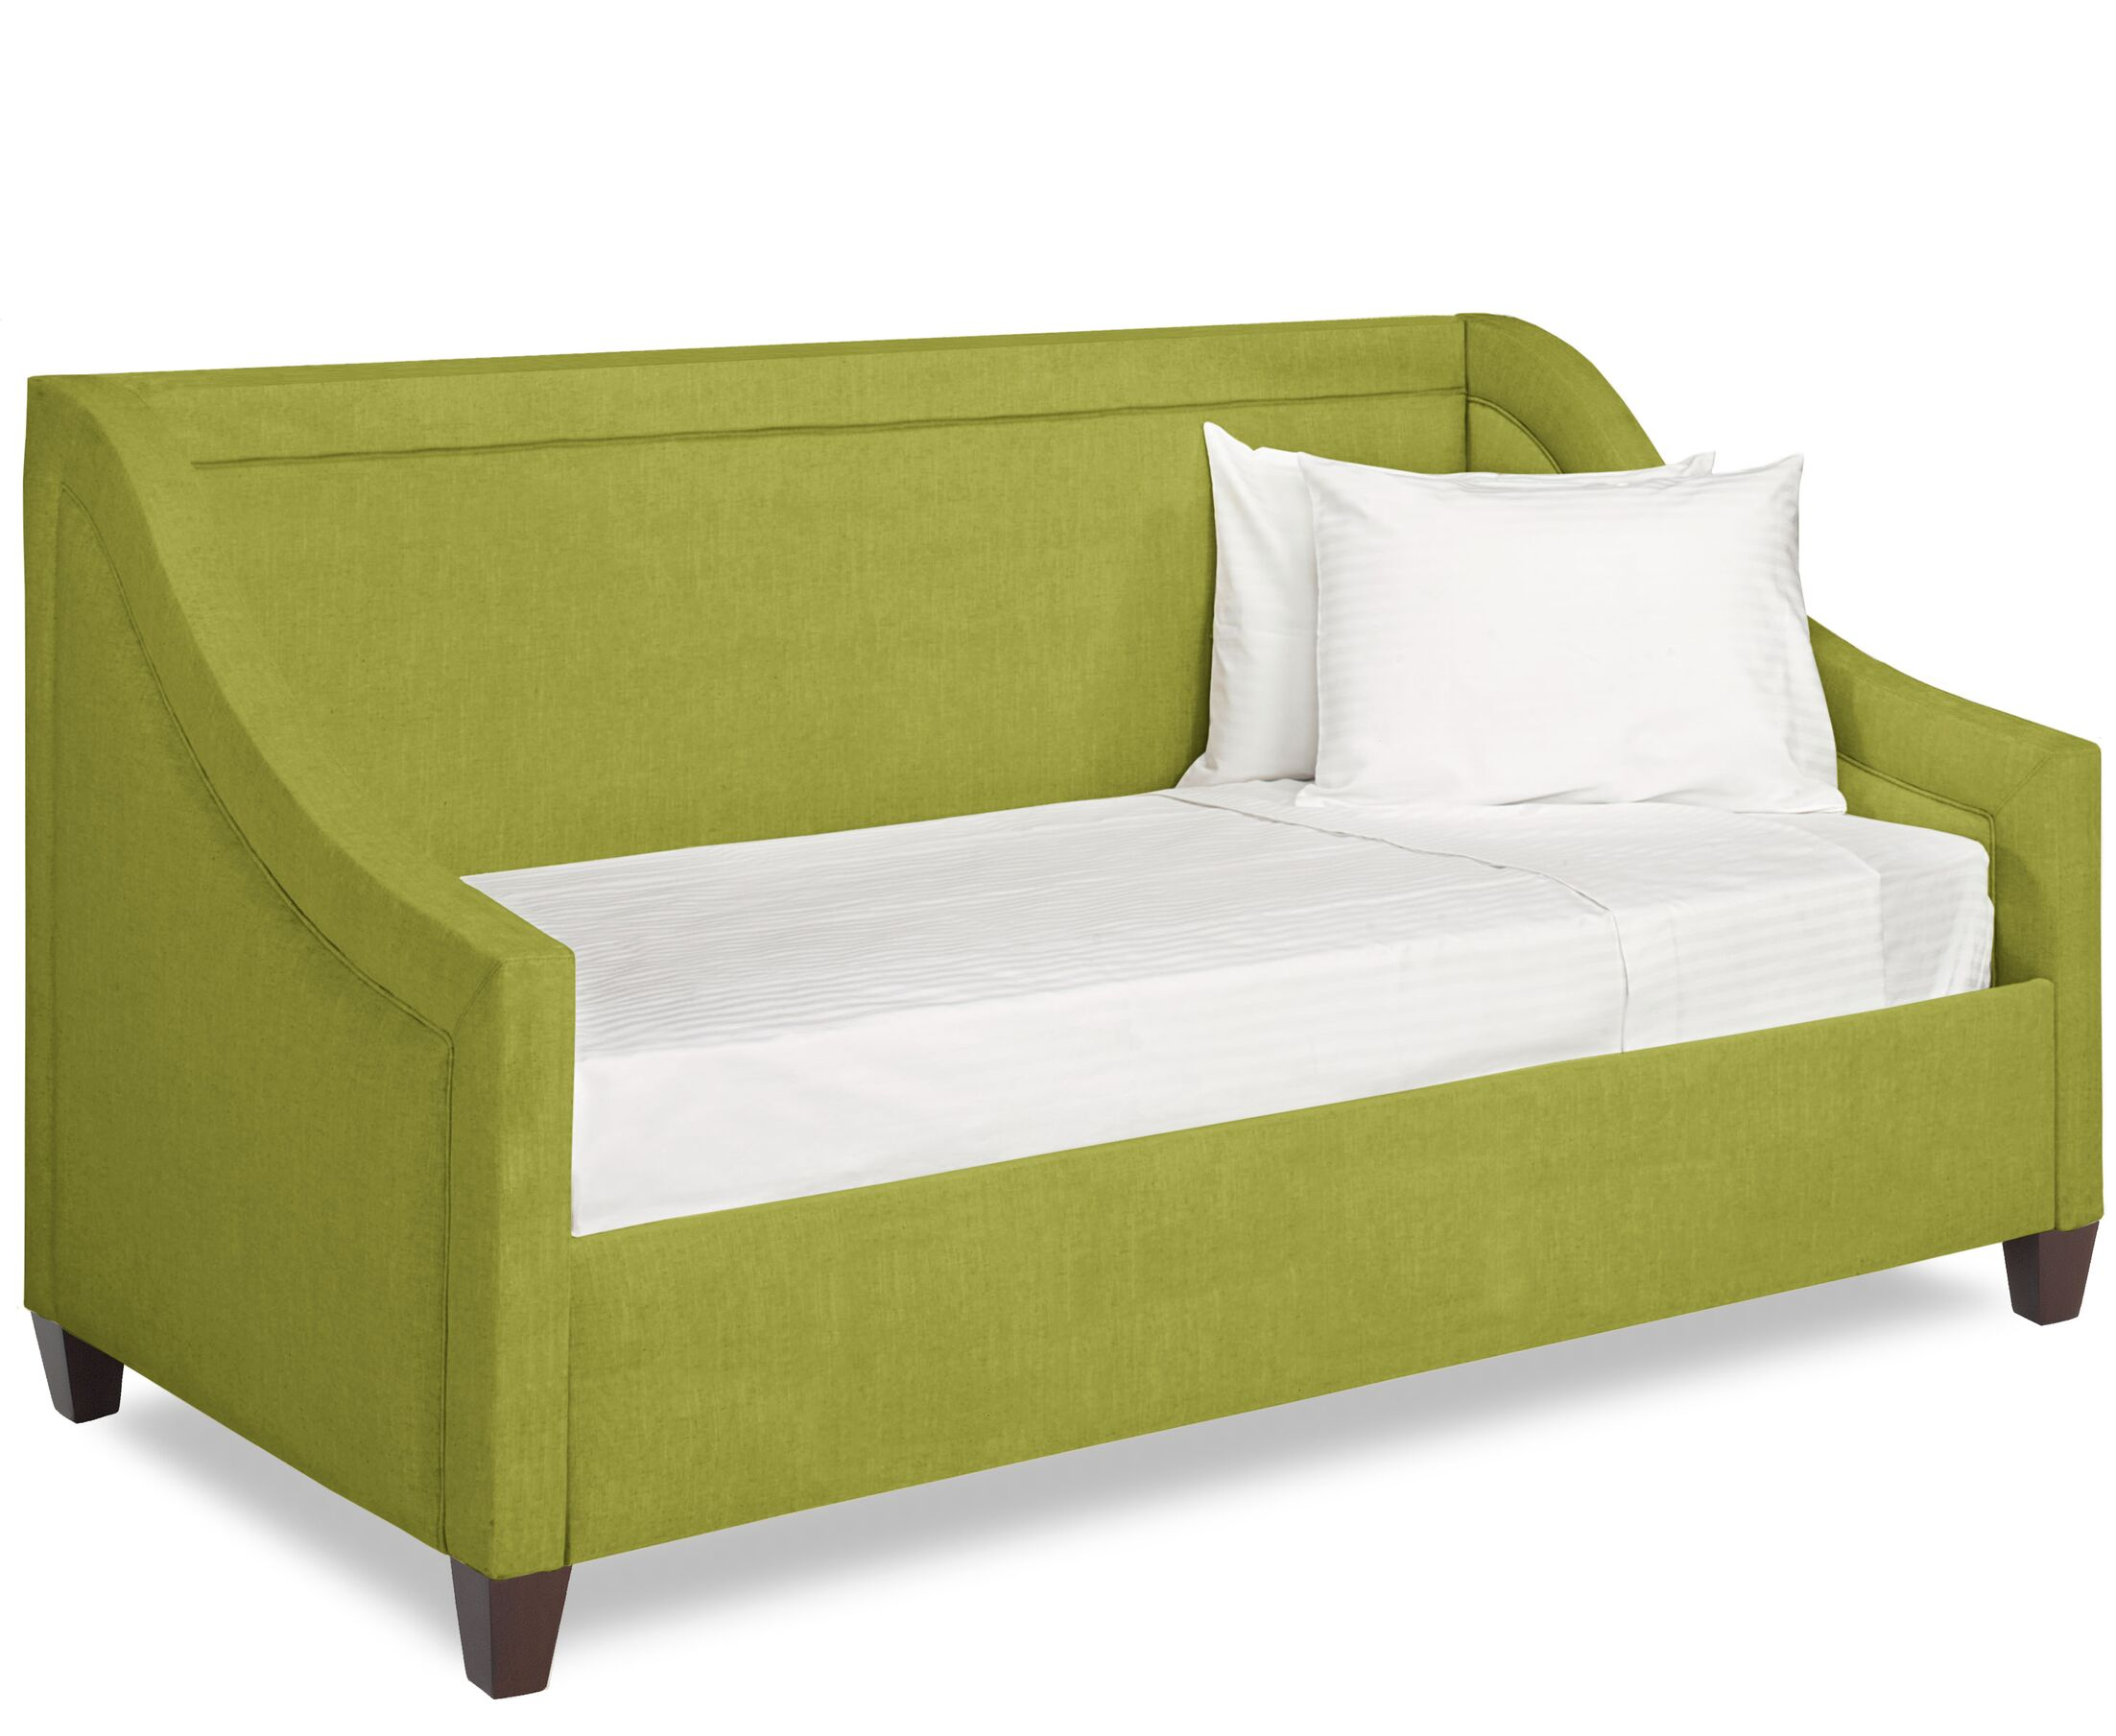 Dreamtime Daybed with Mattress Color: Grass, Size: Twin XL